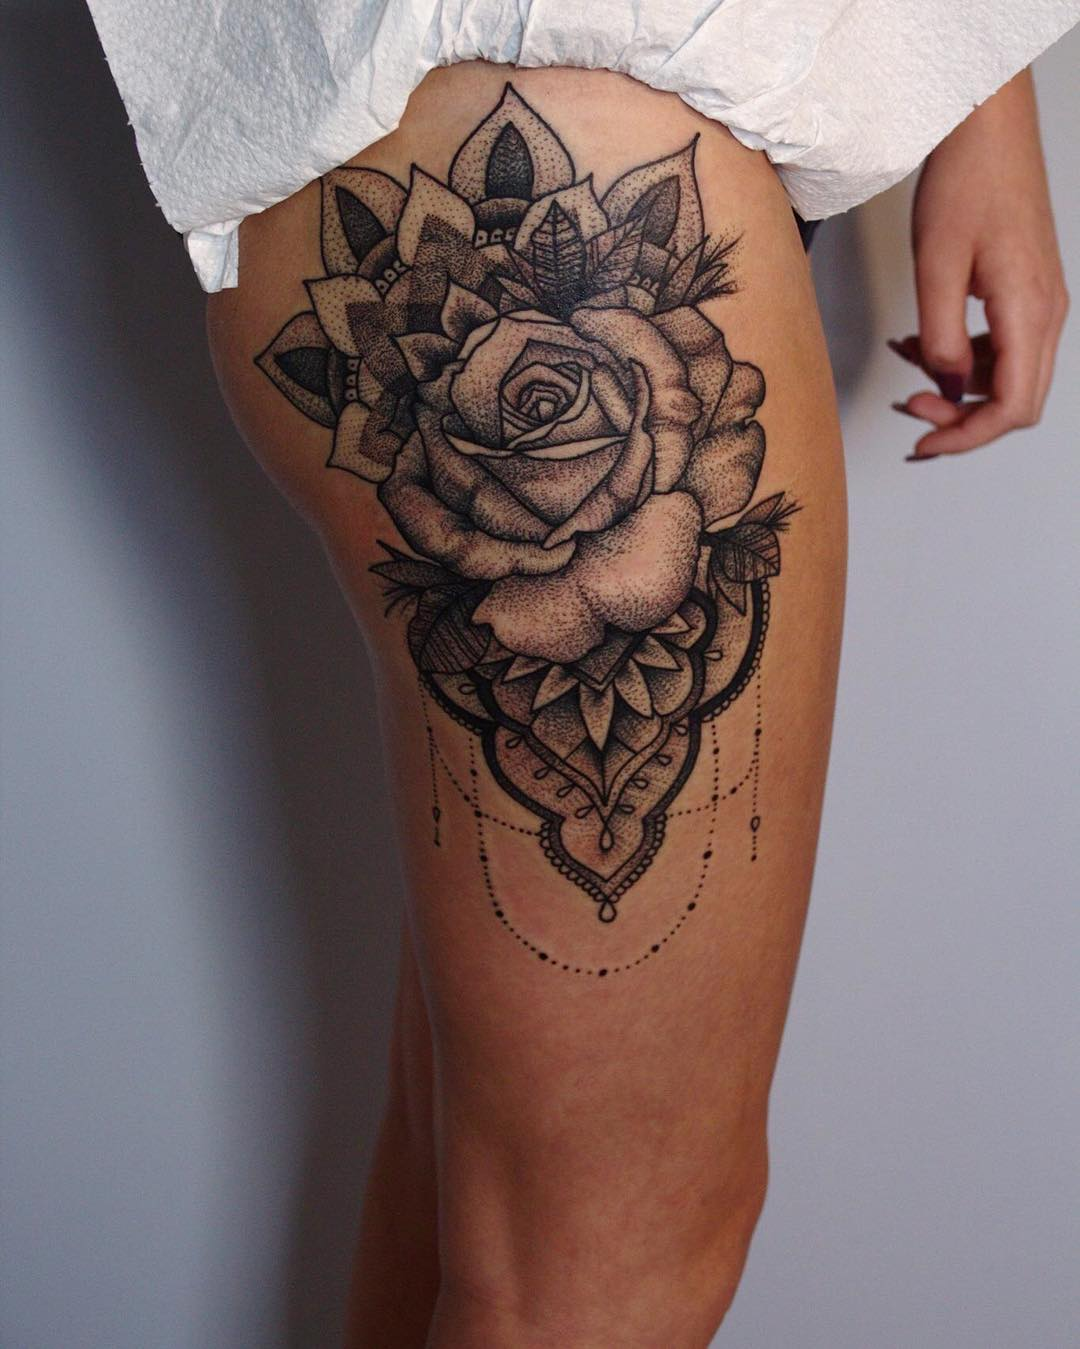 Tattoo Designs Thigh: Rose-tattoo-large-thigh-design